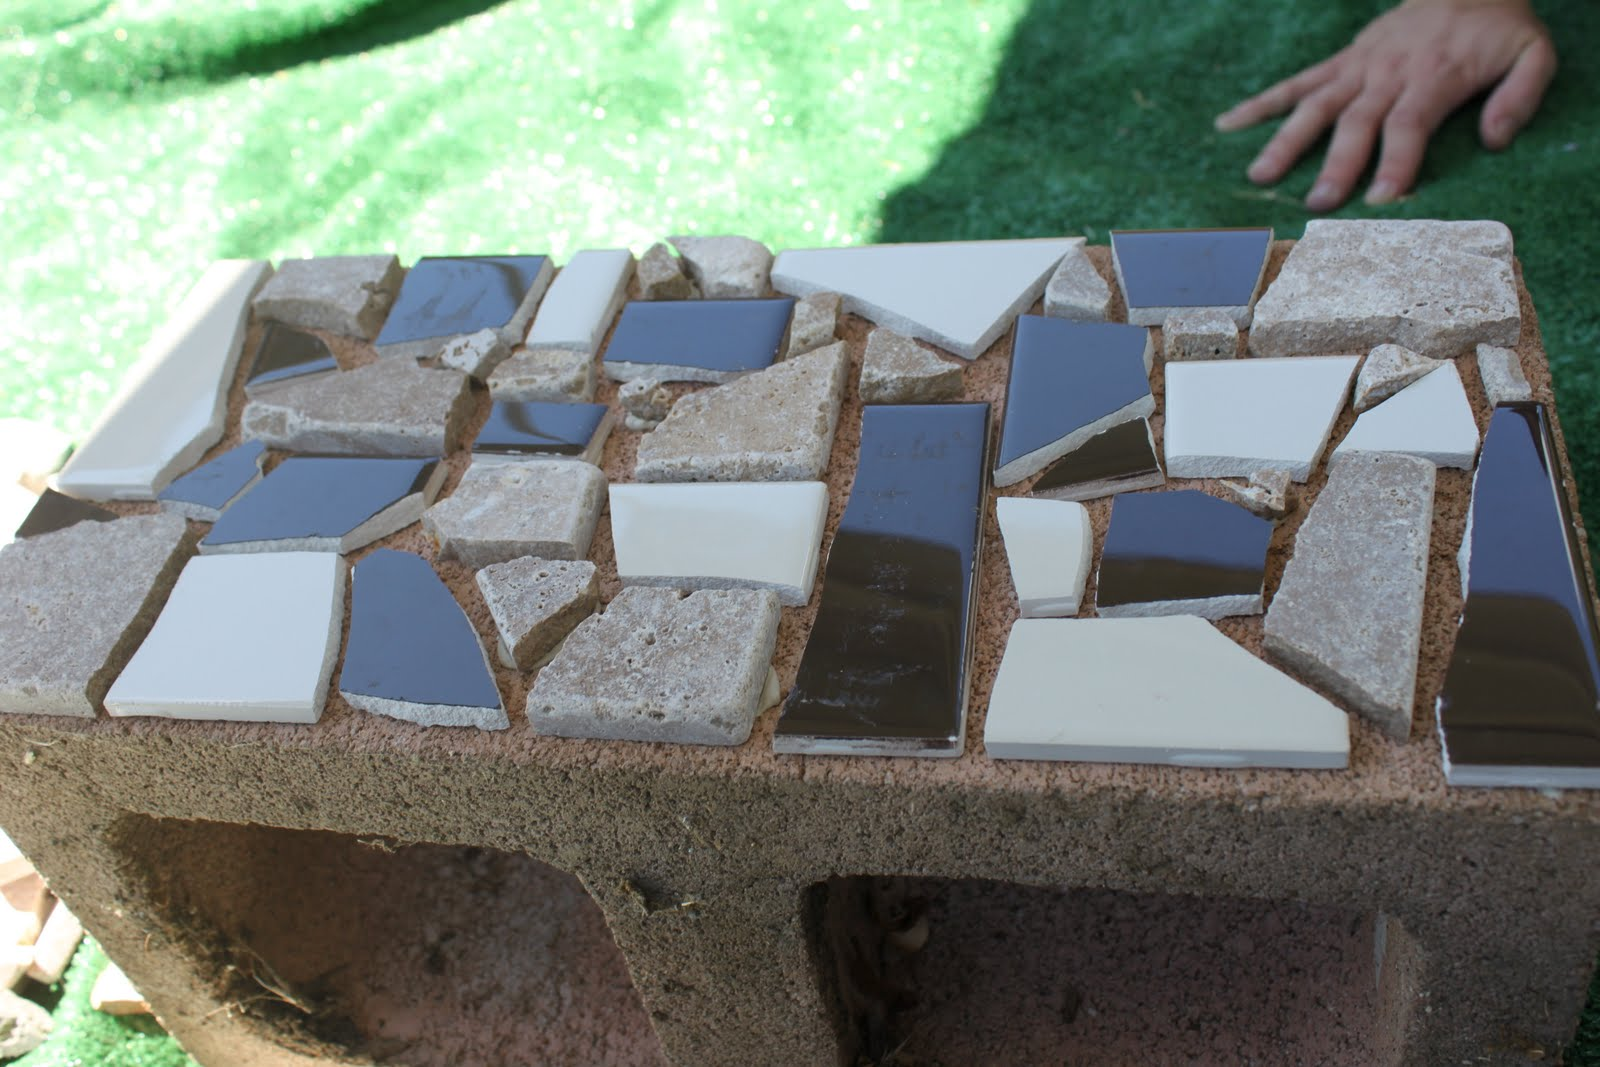 Cinder Block Furniture Backyard :  have collected cinder blocks because there are A LOT in the backyard